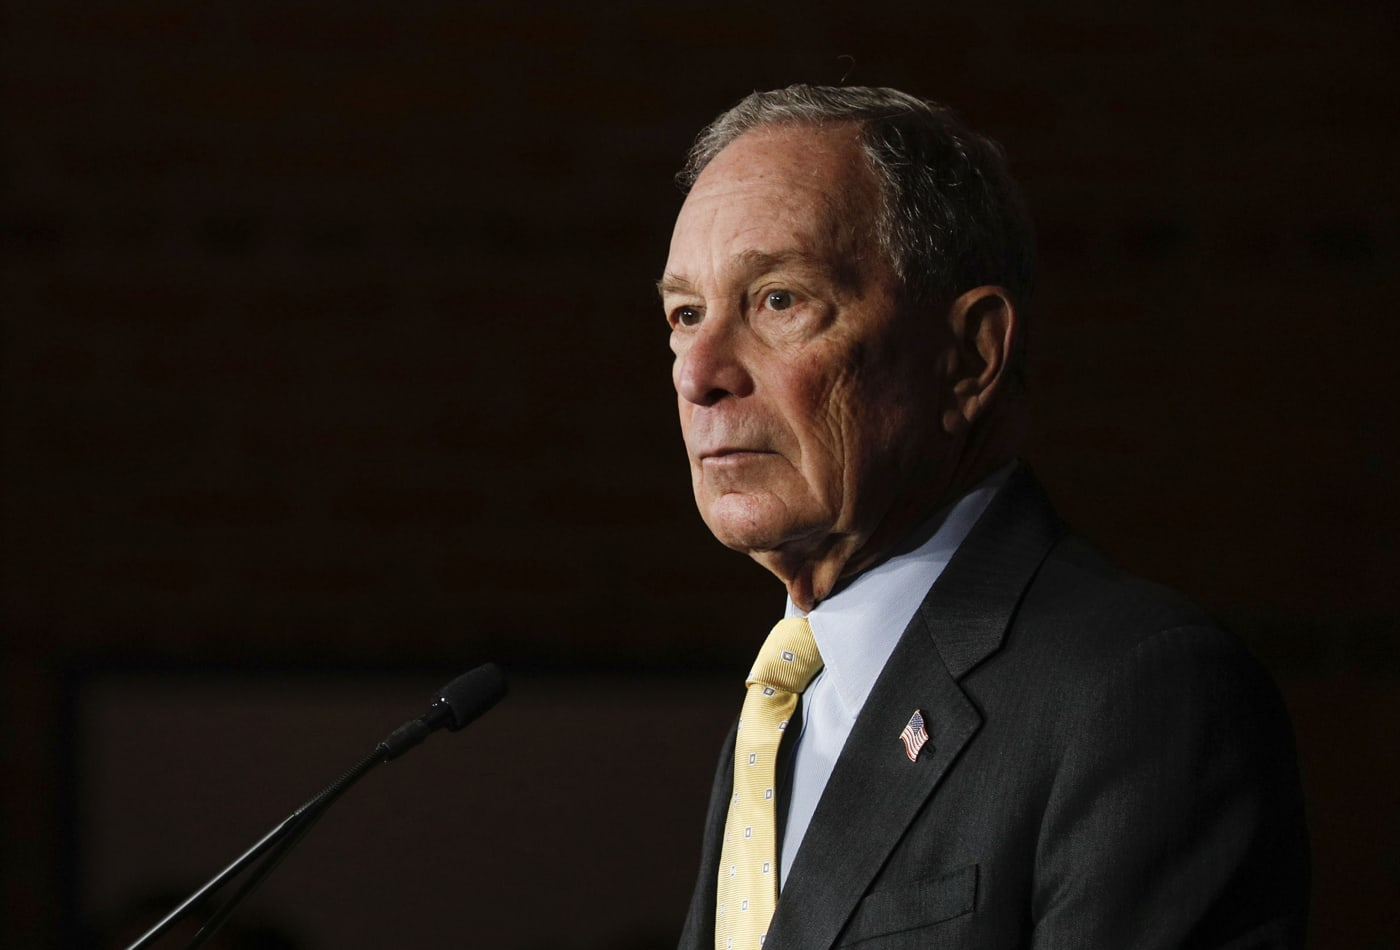 Bloomberg unveils plans for Americans' Social Security, retirement savings